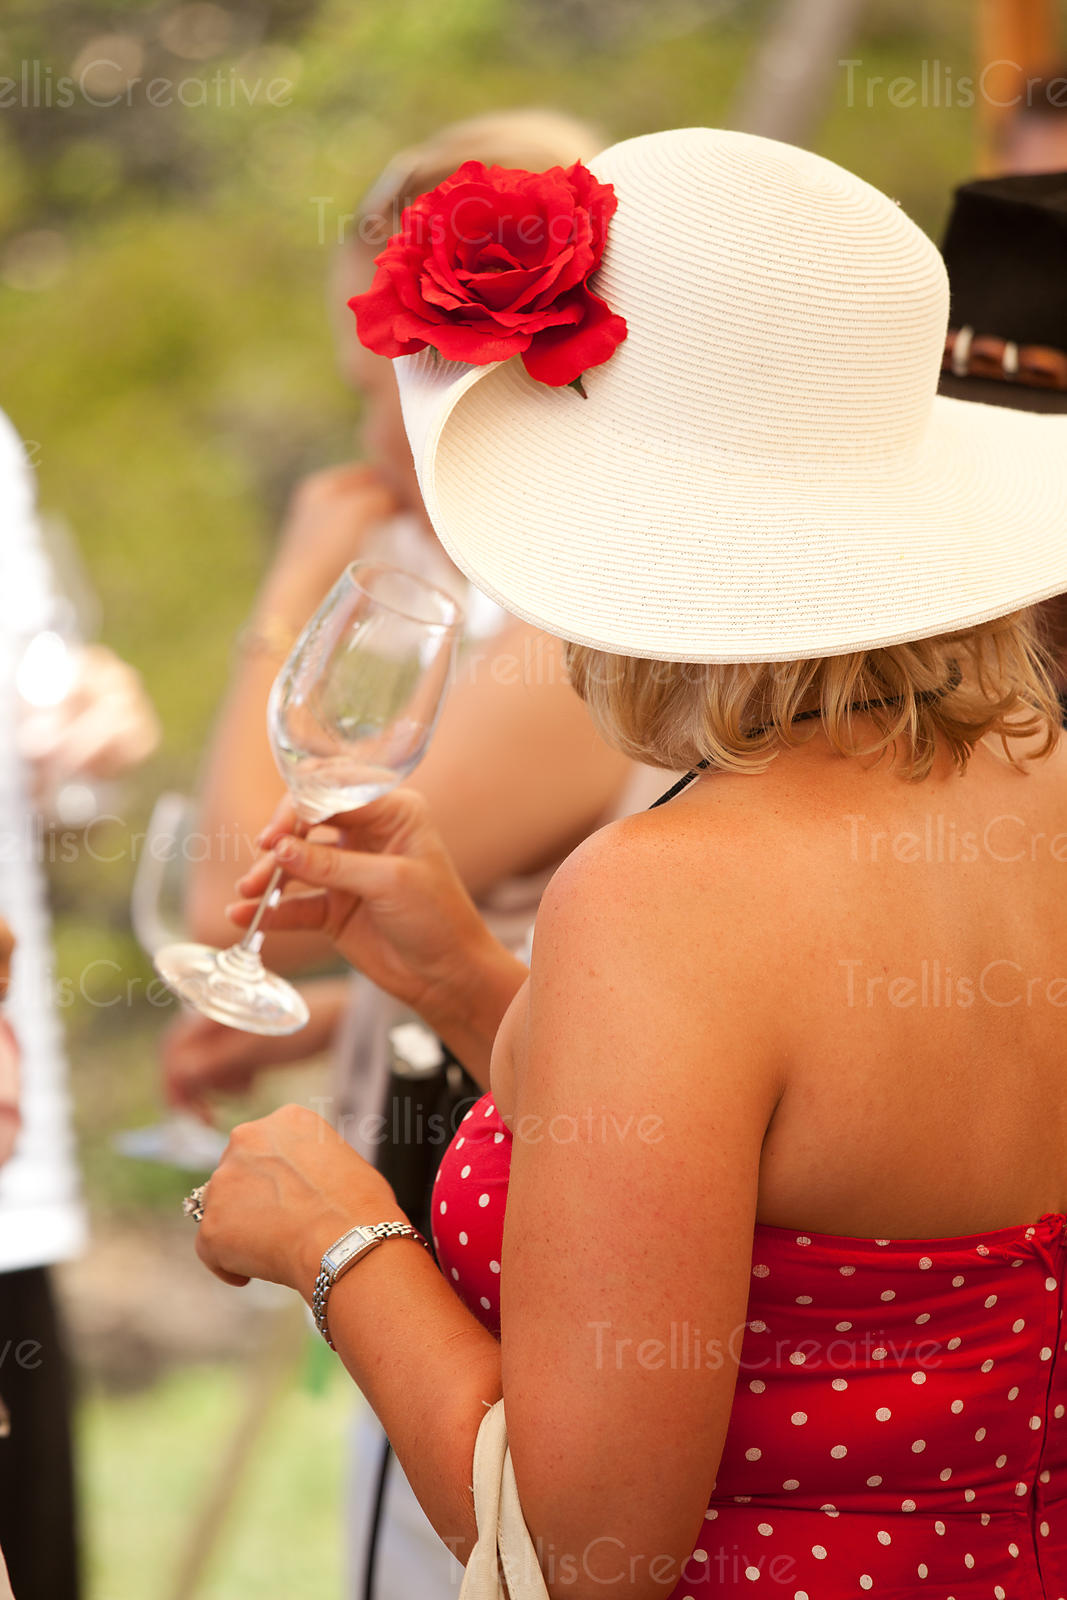 Woman in red dress with white hat drinking wine